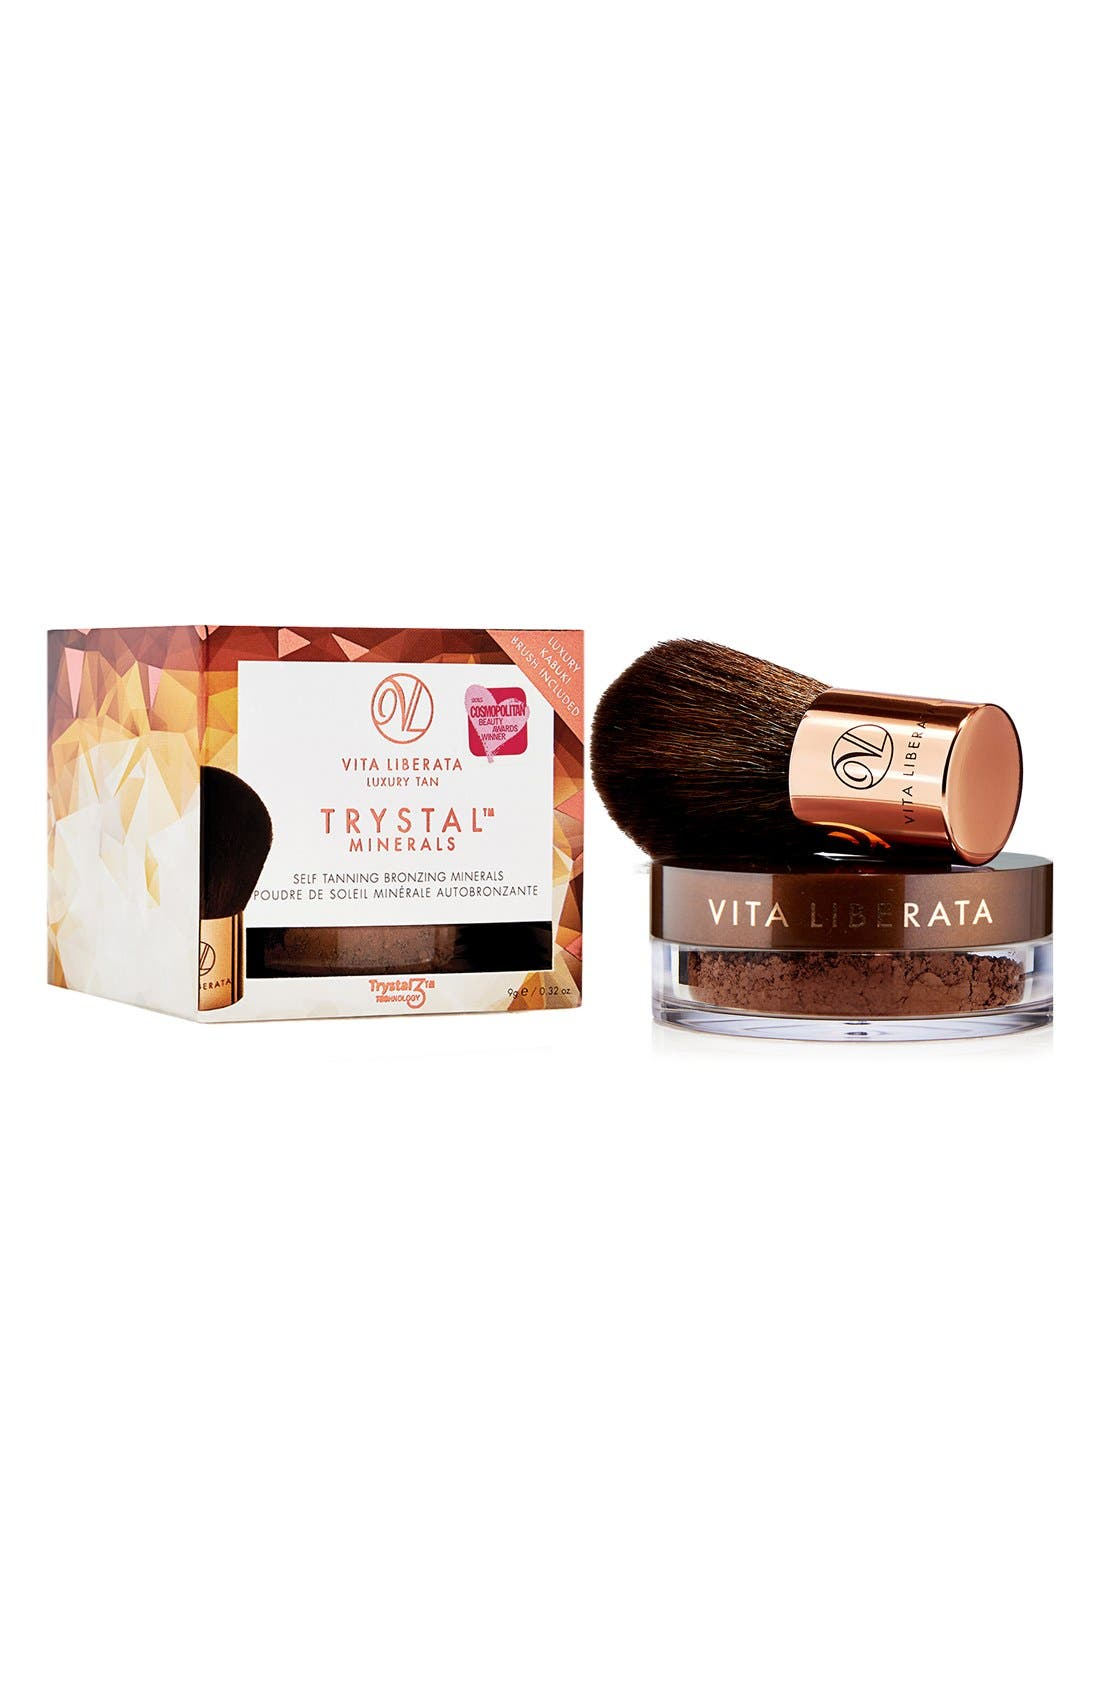 Trystal<sup>™</sup> Minerals Bronze Self Tanning Bronzing Minerals & Kabuki Brush,                             Alternate thumbnail 2, color,                             NO COLOR